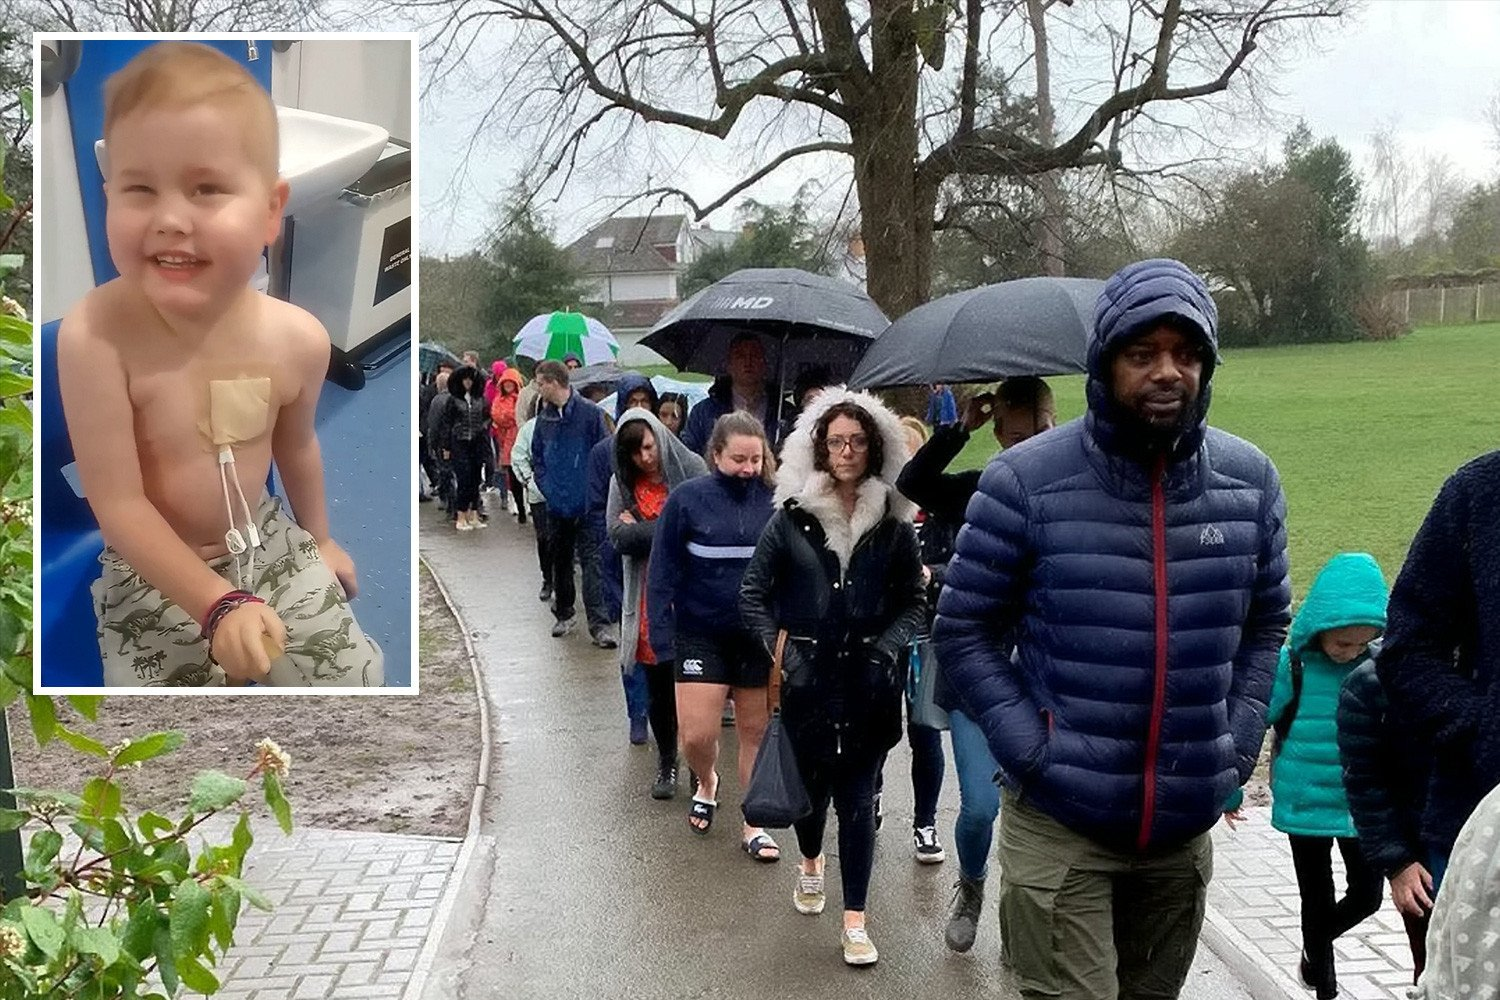 Almost FIVE THOUSAND people queue in rain for hours to see if they are organ match for dying boy, 5, in bid to save his life